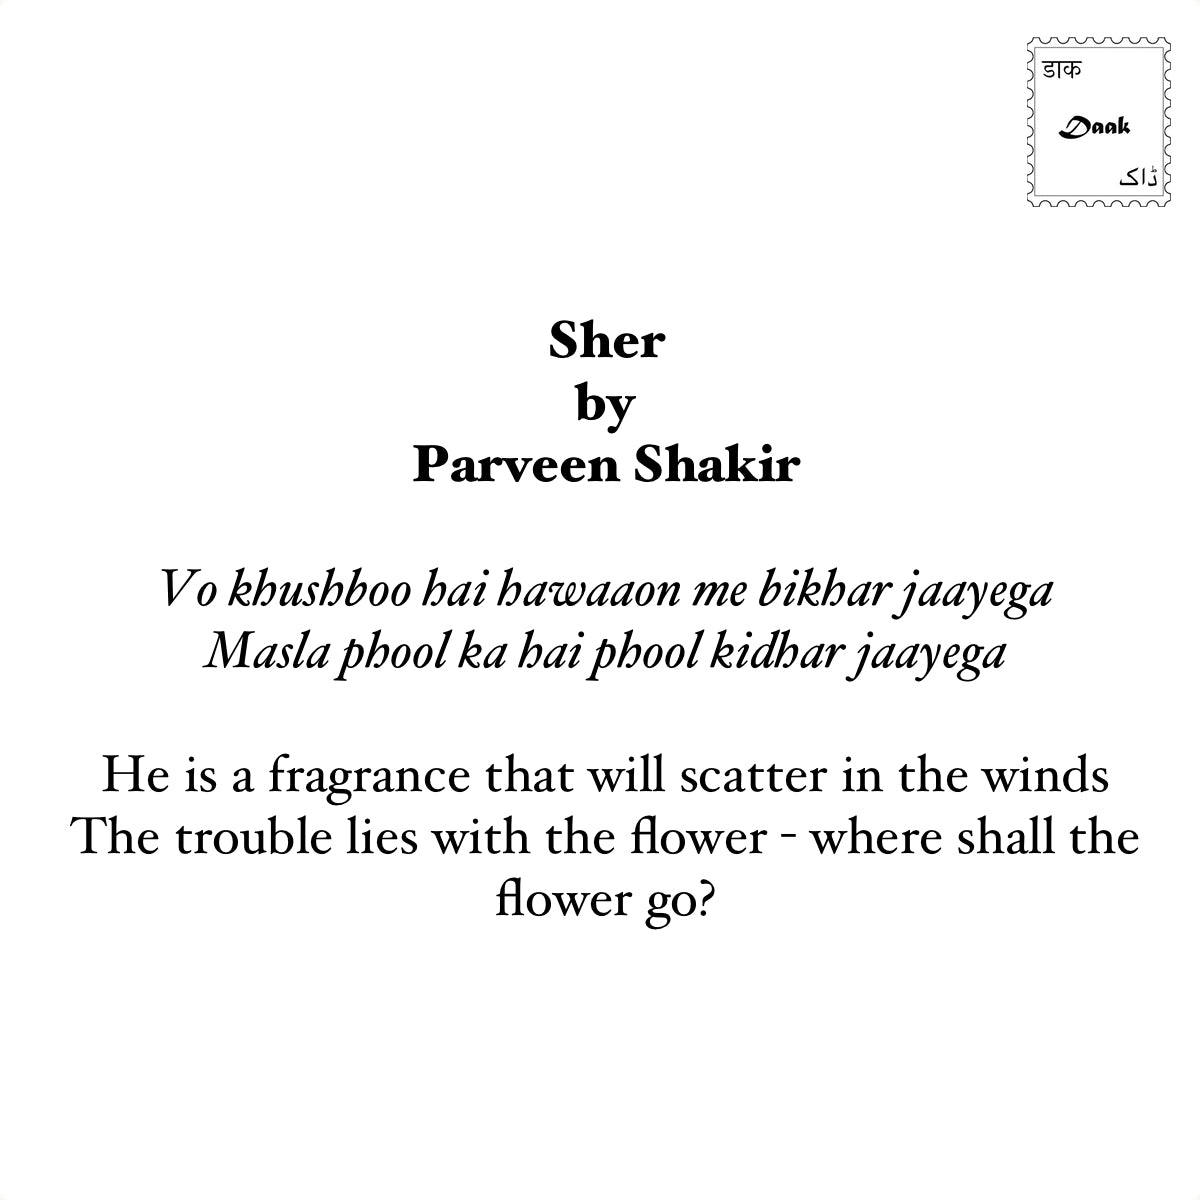 'Khushboo' - Framed Quote by Parveen Shakir